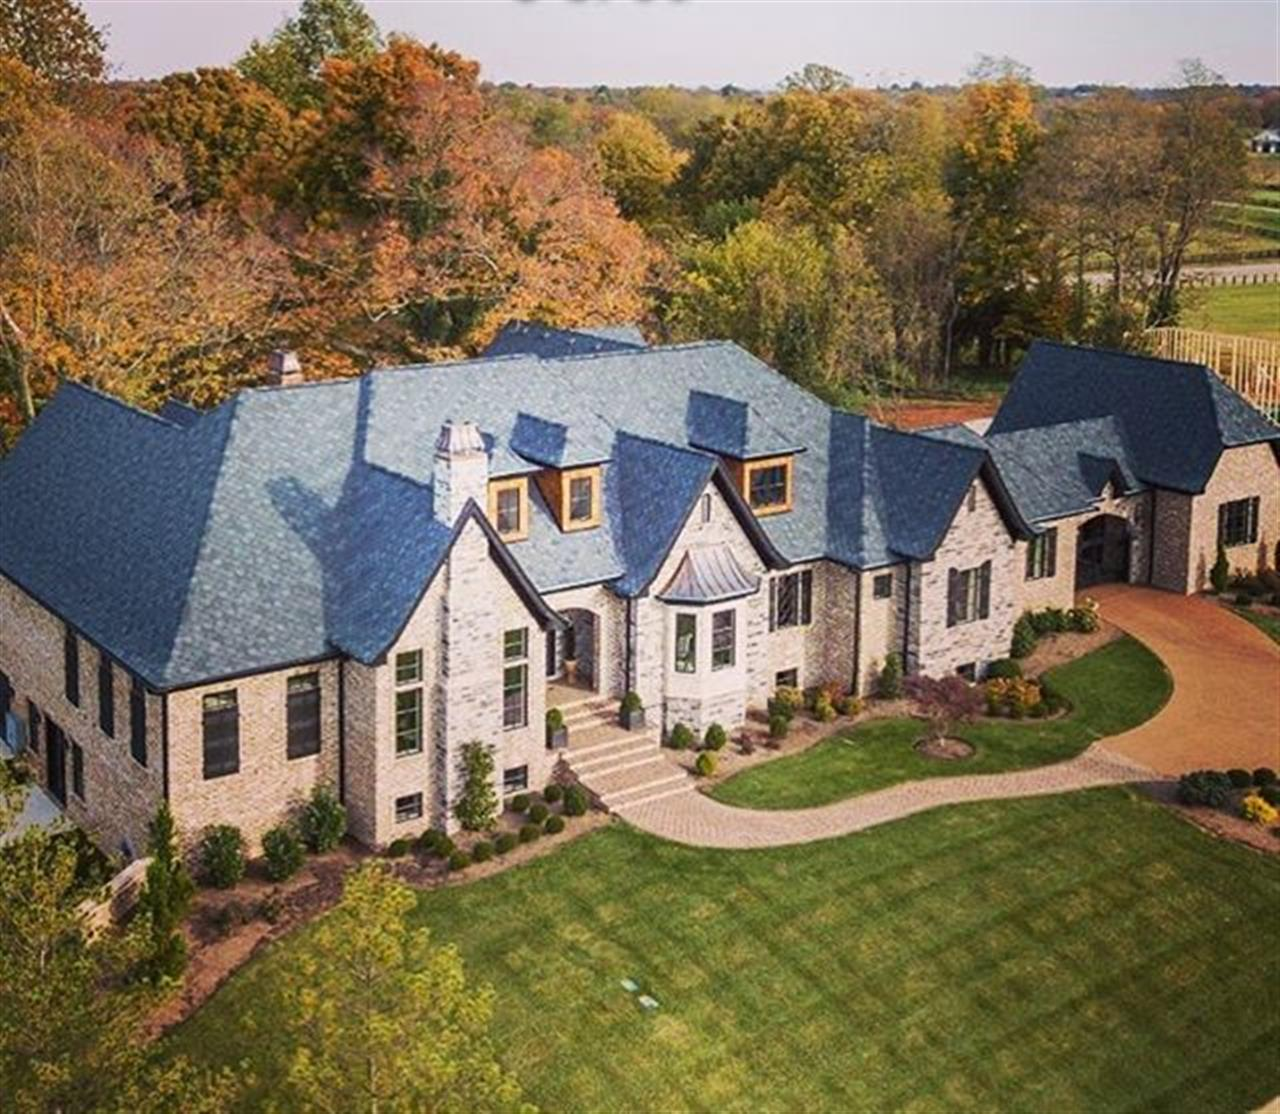 Another #luxuryrealestate listing from #salliedavidsonrealtors  This #lexingtonkentucky home features 5 Bedrooms, 4.5 Baths, modern platinum grade kitchen, 2 story owners closet, 10,000 sqft of living space and so much more. Let me serve as your #realtor and your guide for this custom built estate. 606-524-7894 #yourrealtor #luxurylifestyle #leadingre #lexky #sharethelex #realestate #homeinkentucky #realtor« #home #localglobal #liveinkentucky #homesofig #elegance #charm #danielcarmack